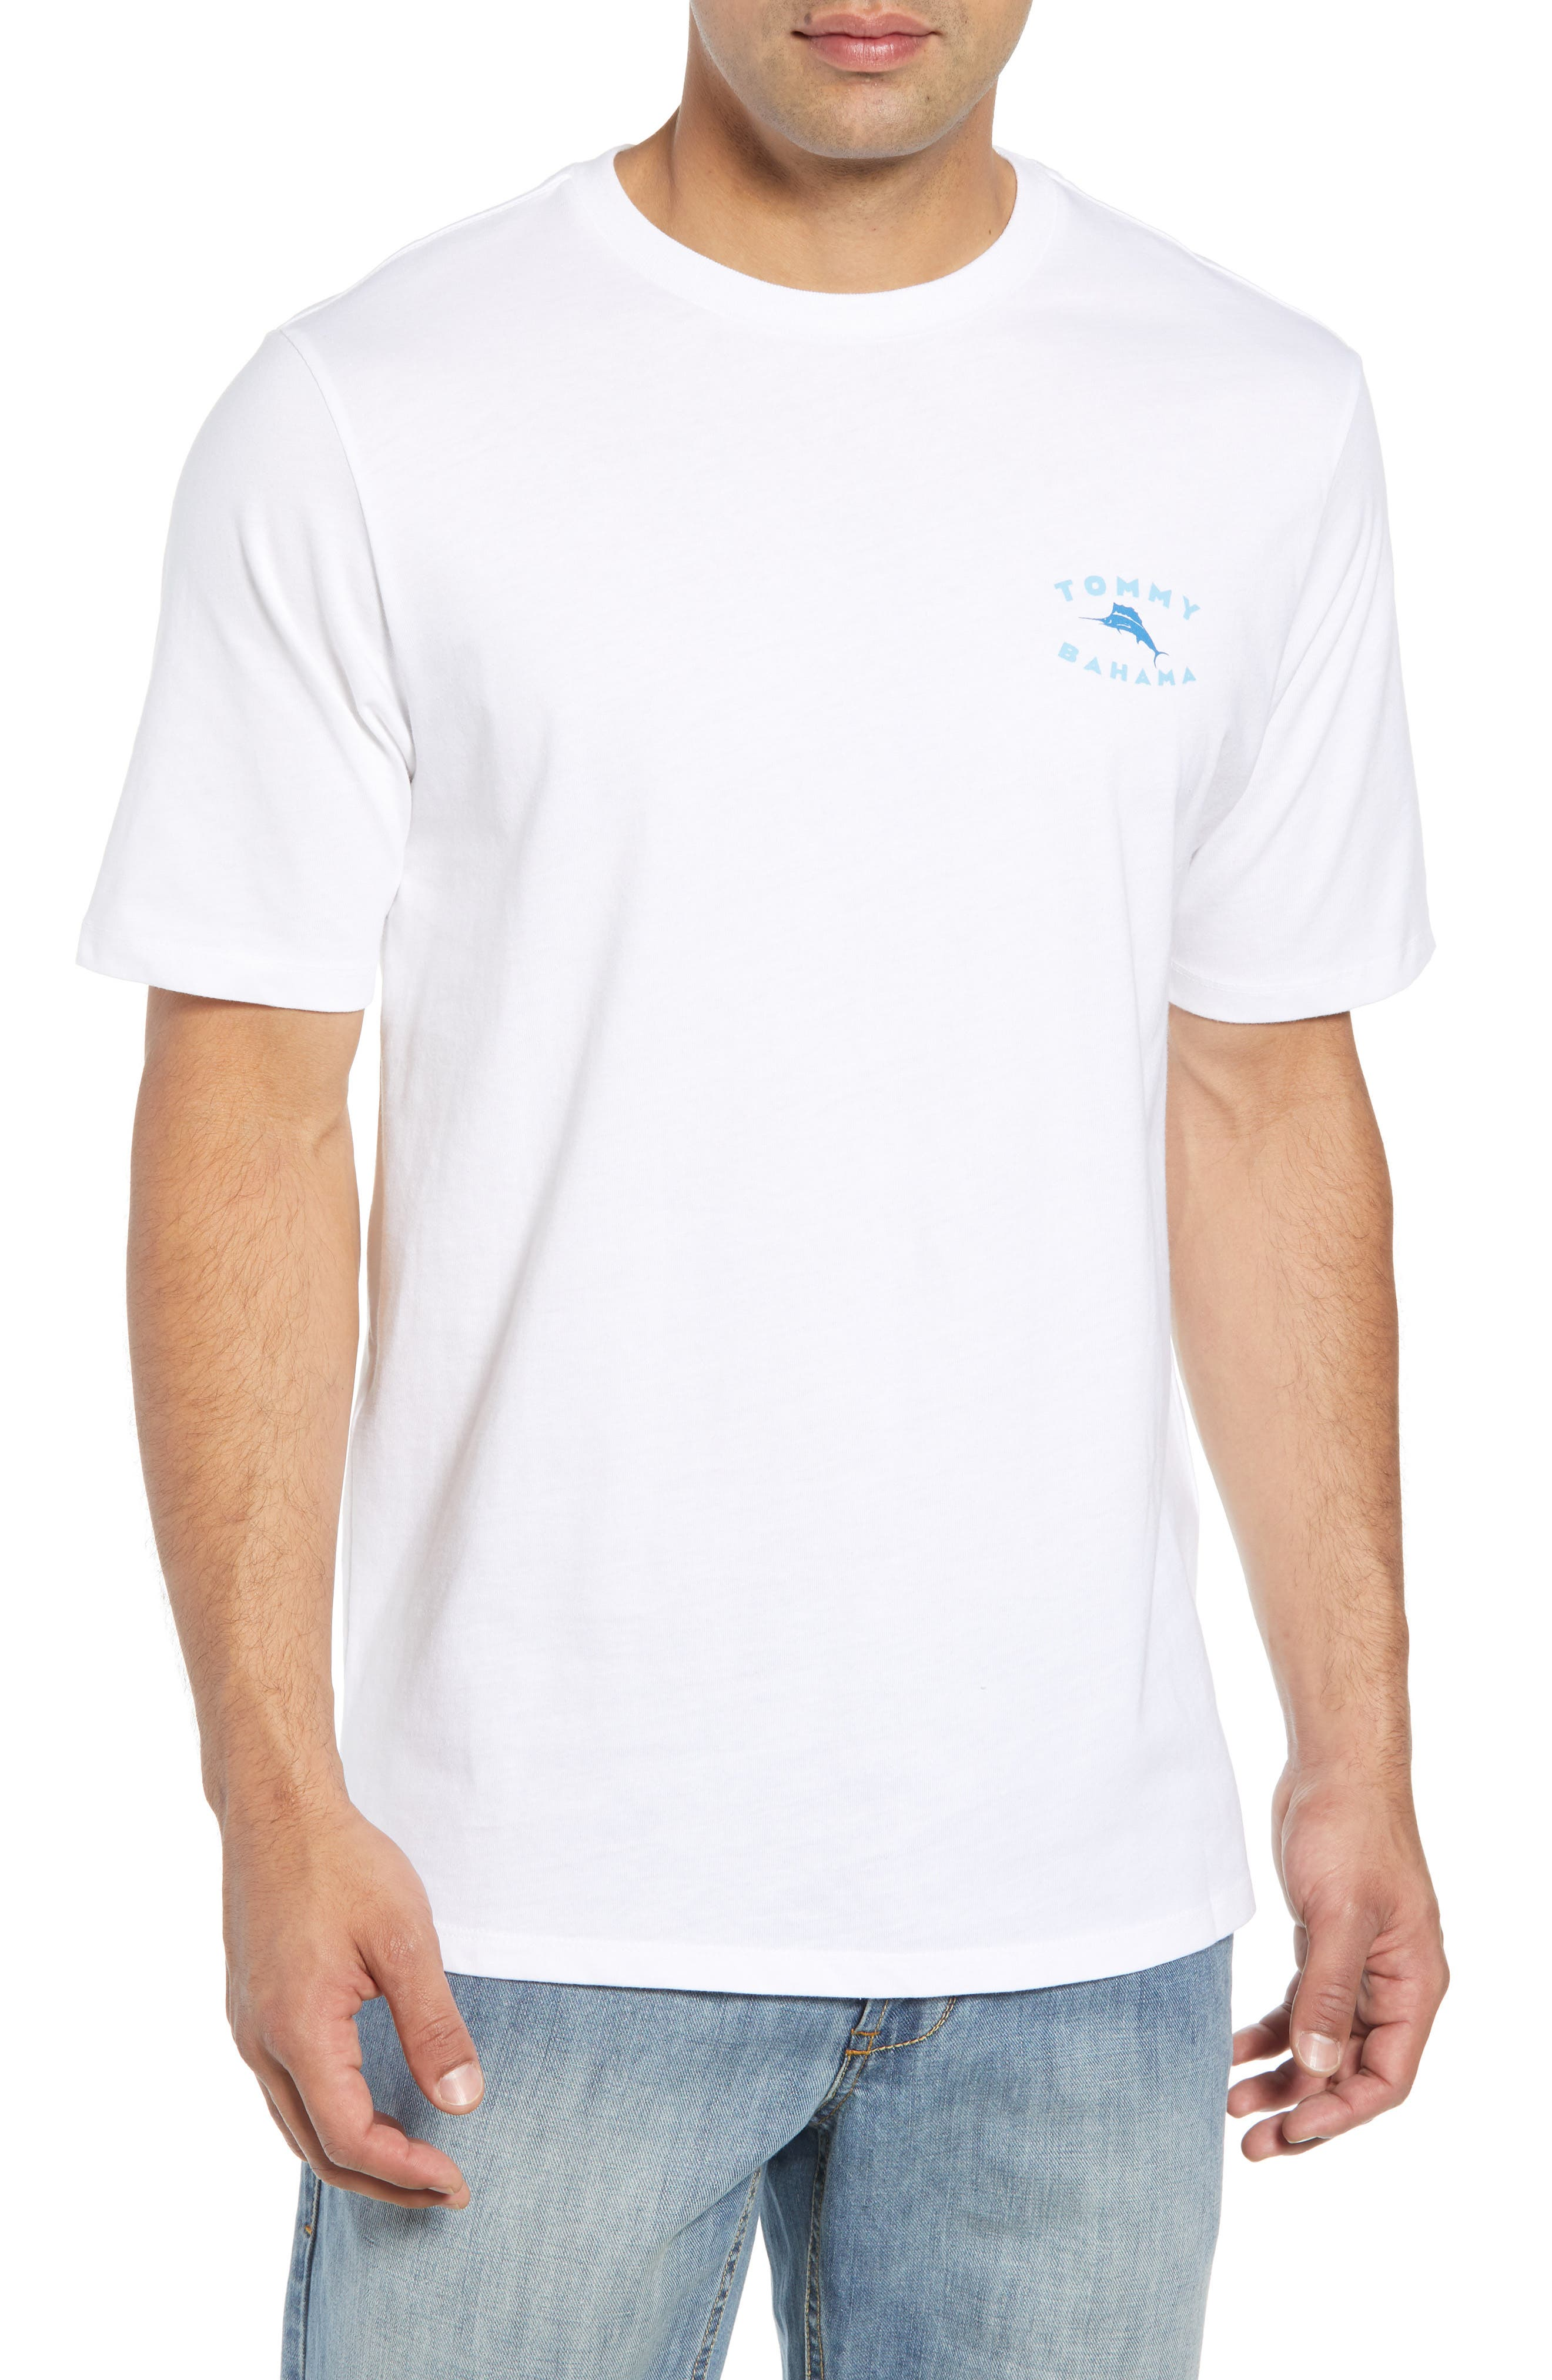 TOMMY BAHAMA Complete Transparency T-Shirt, Main, color, 100